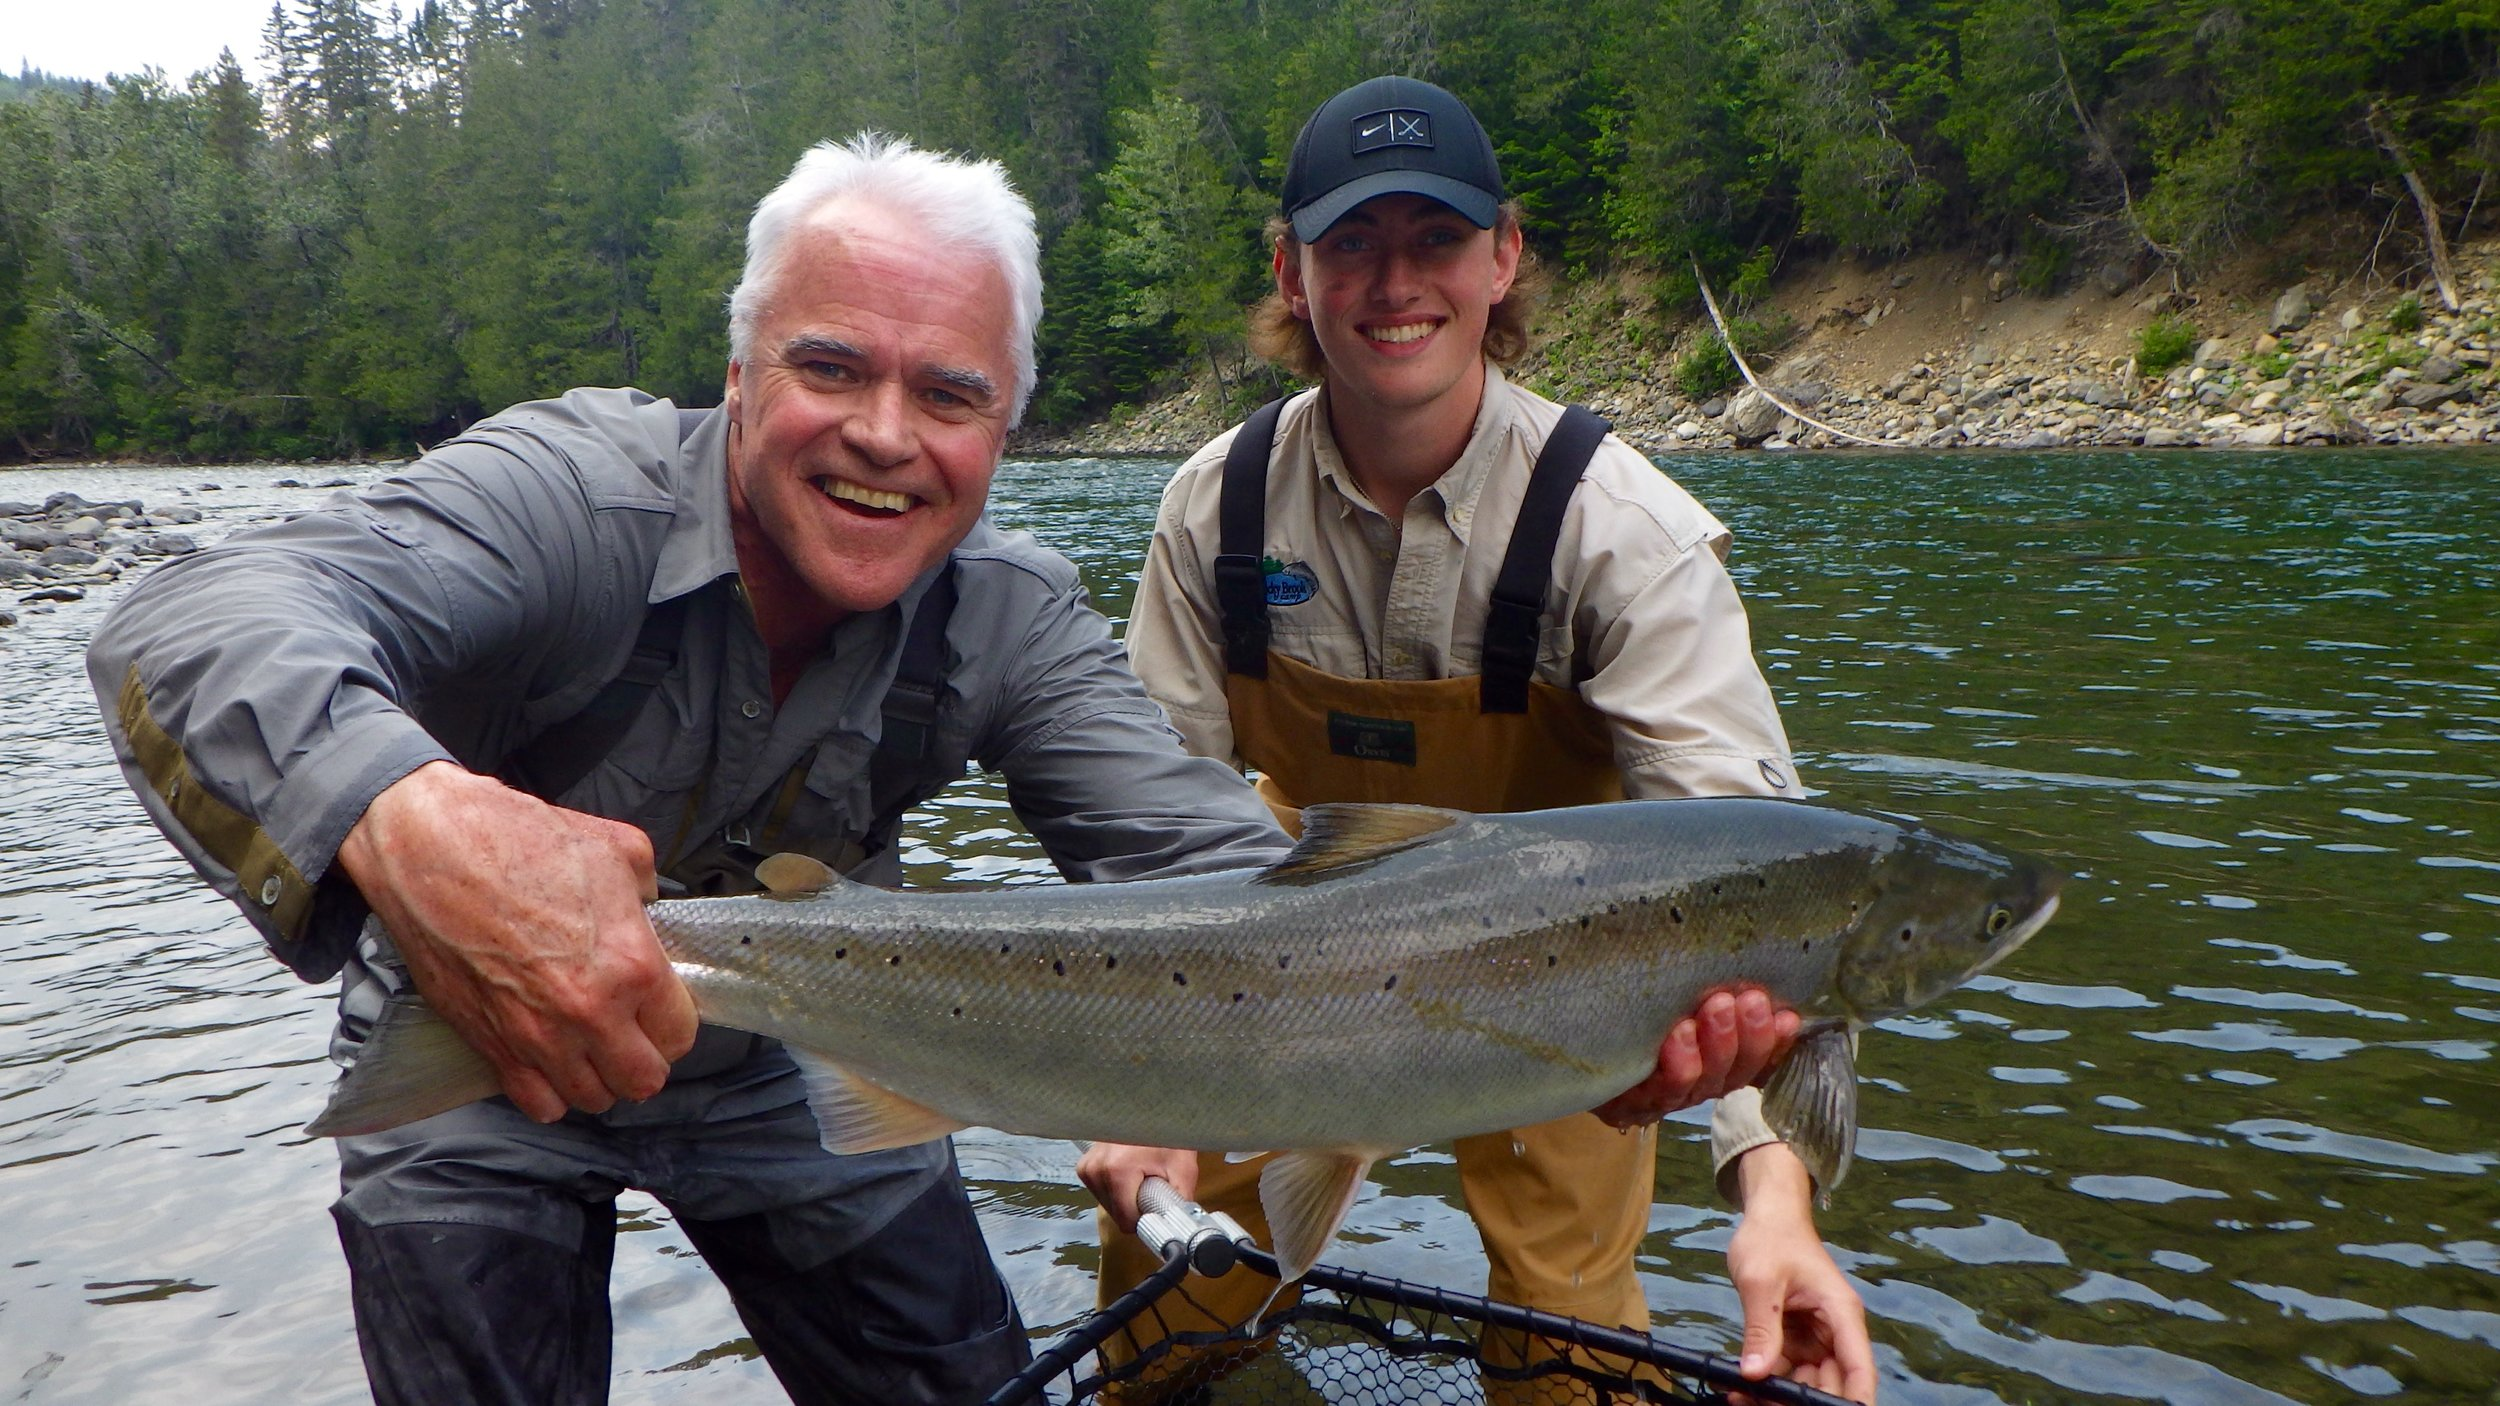 Mac Fox (Left) has become a part of our family at Camp Bonaventure, here he is with his grandson Hunter Gartley and this is Hunters first Bonaventure salmon. Congratulations !